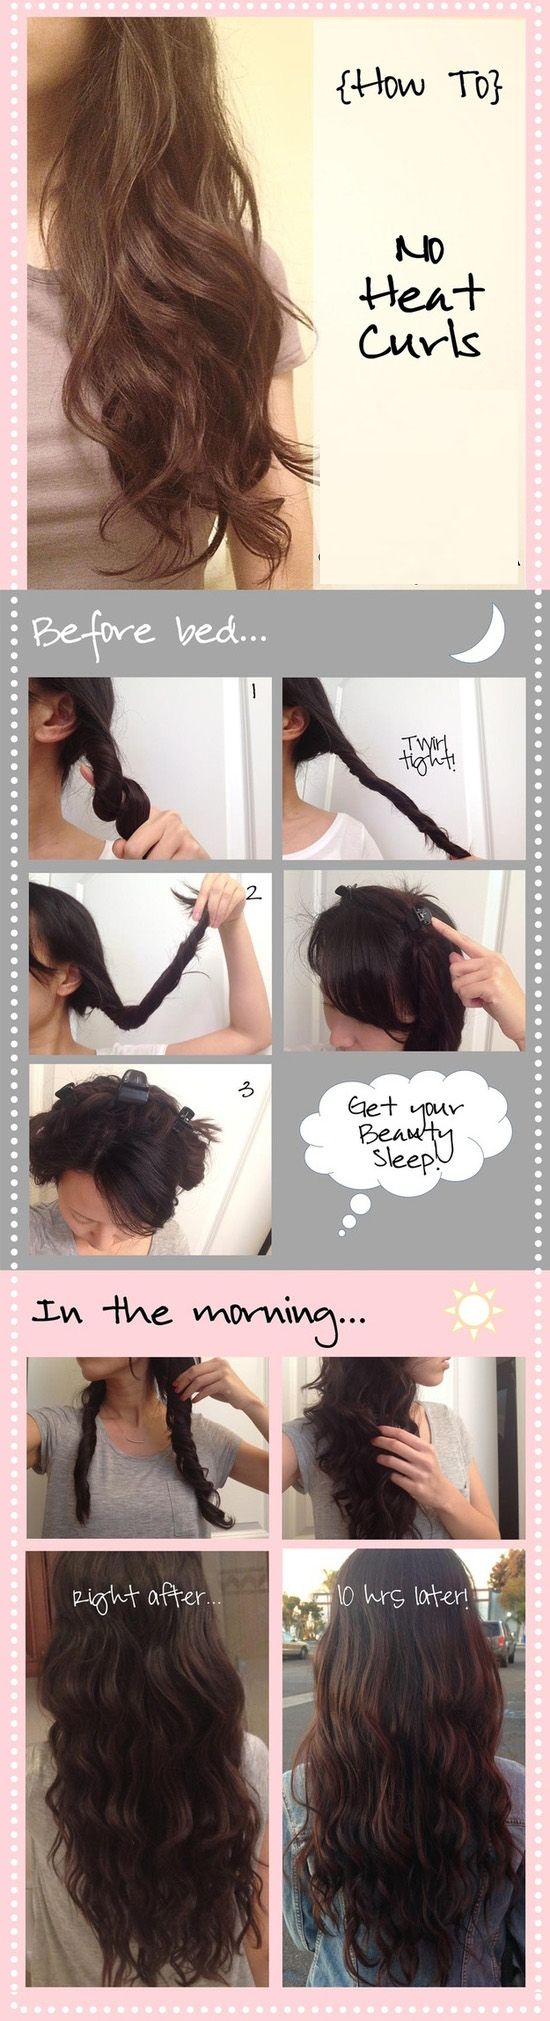 So I did this and it really works, but i do three twist because my hair is thick. I do this practically every day (it is a real time saver in the morning).